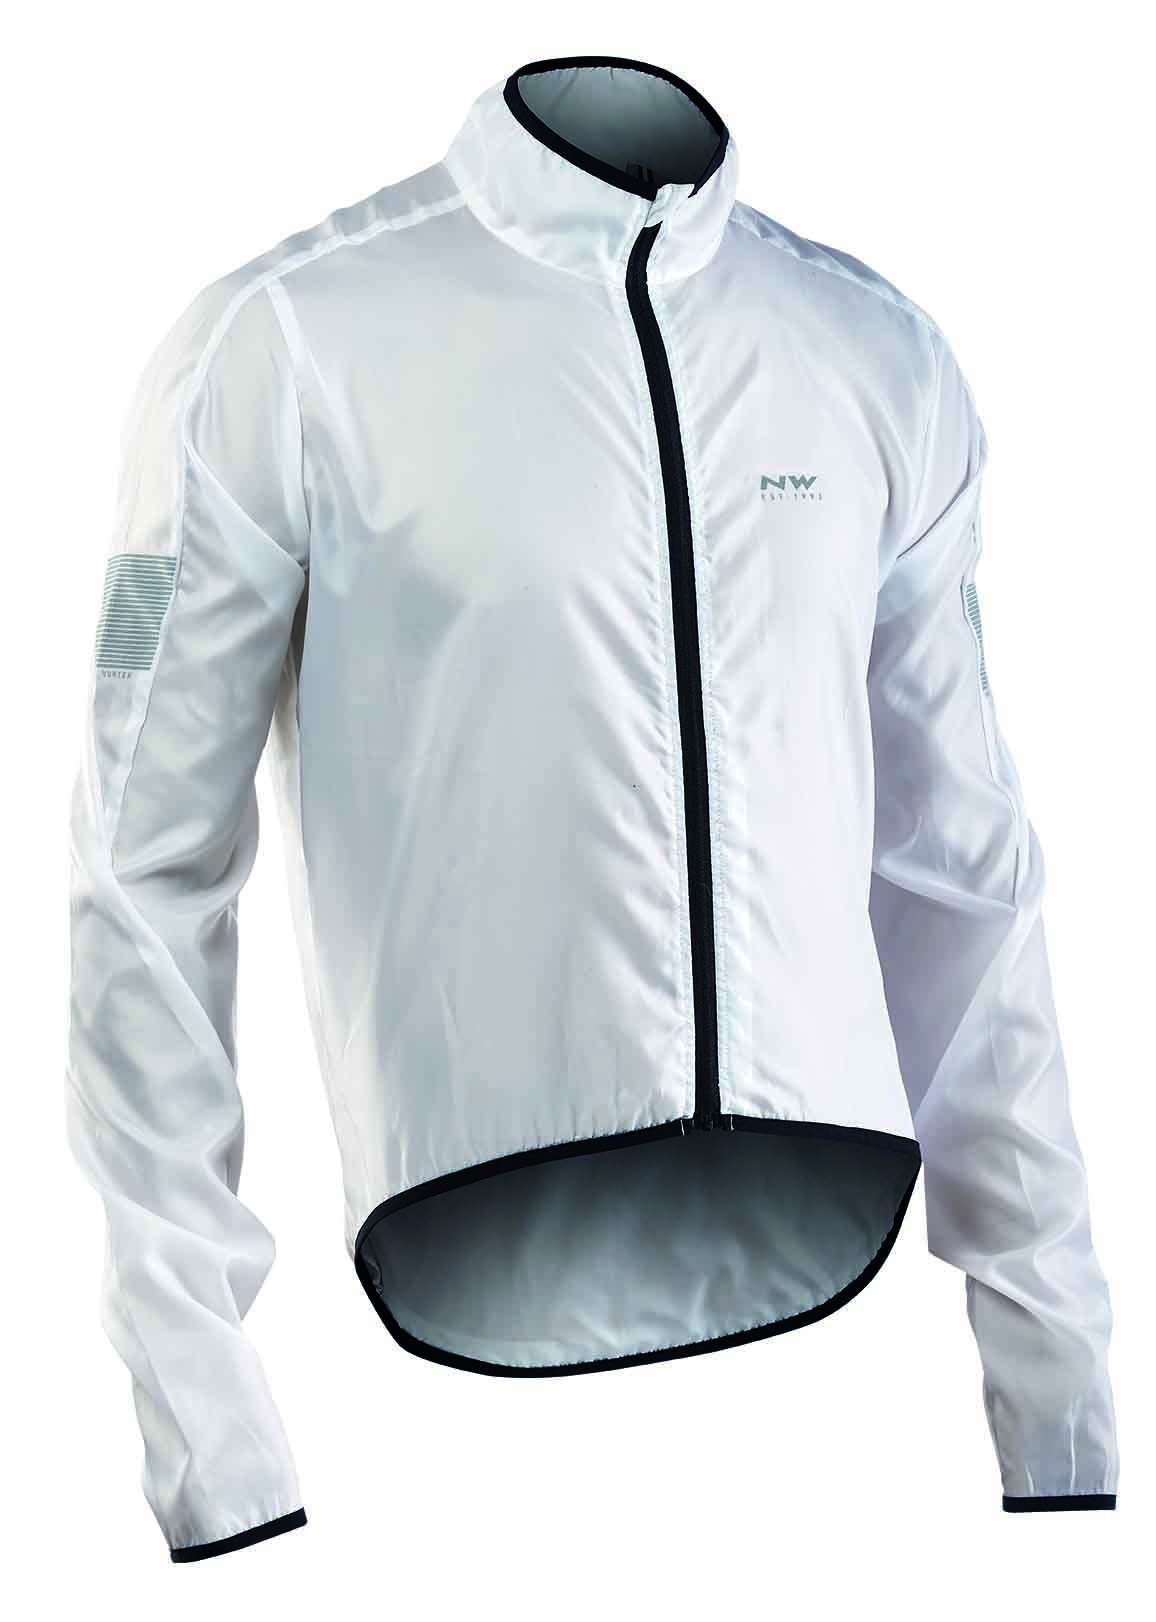 Giacca Antivento e Idrorepellente Ciclismo Northwave Vortex Jacket  WHITE